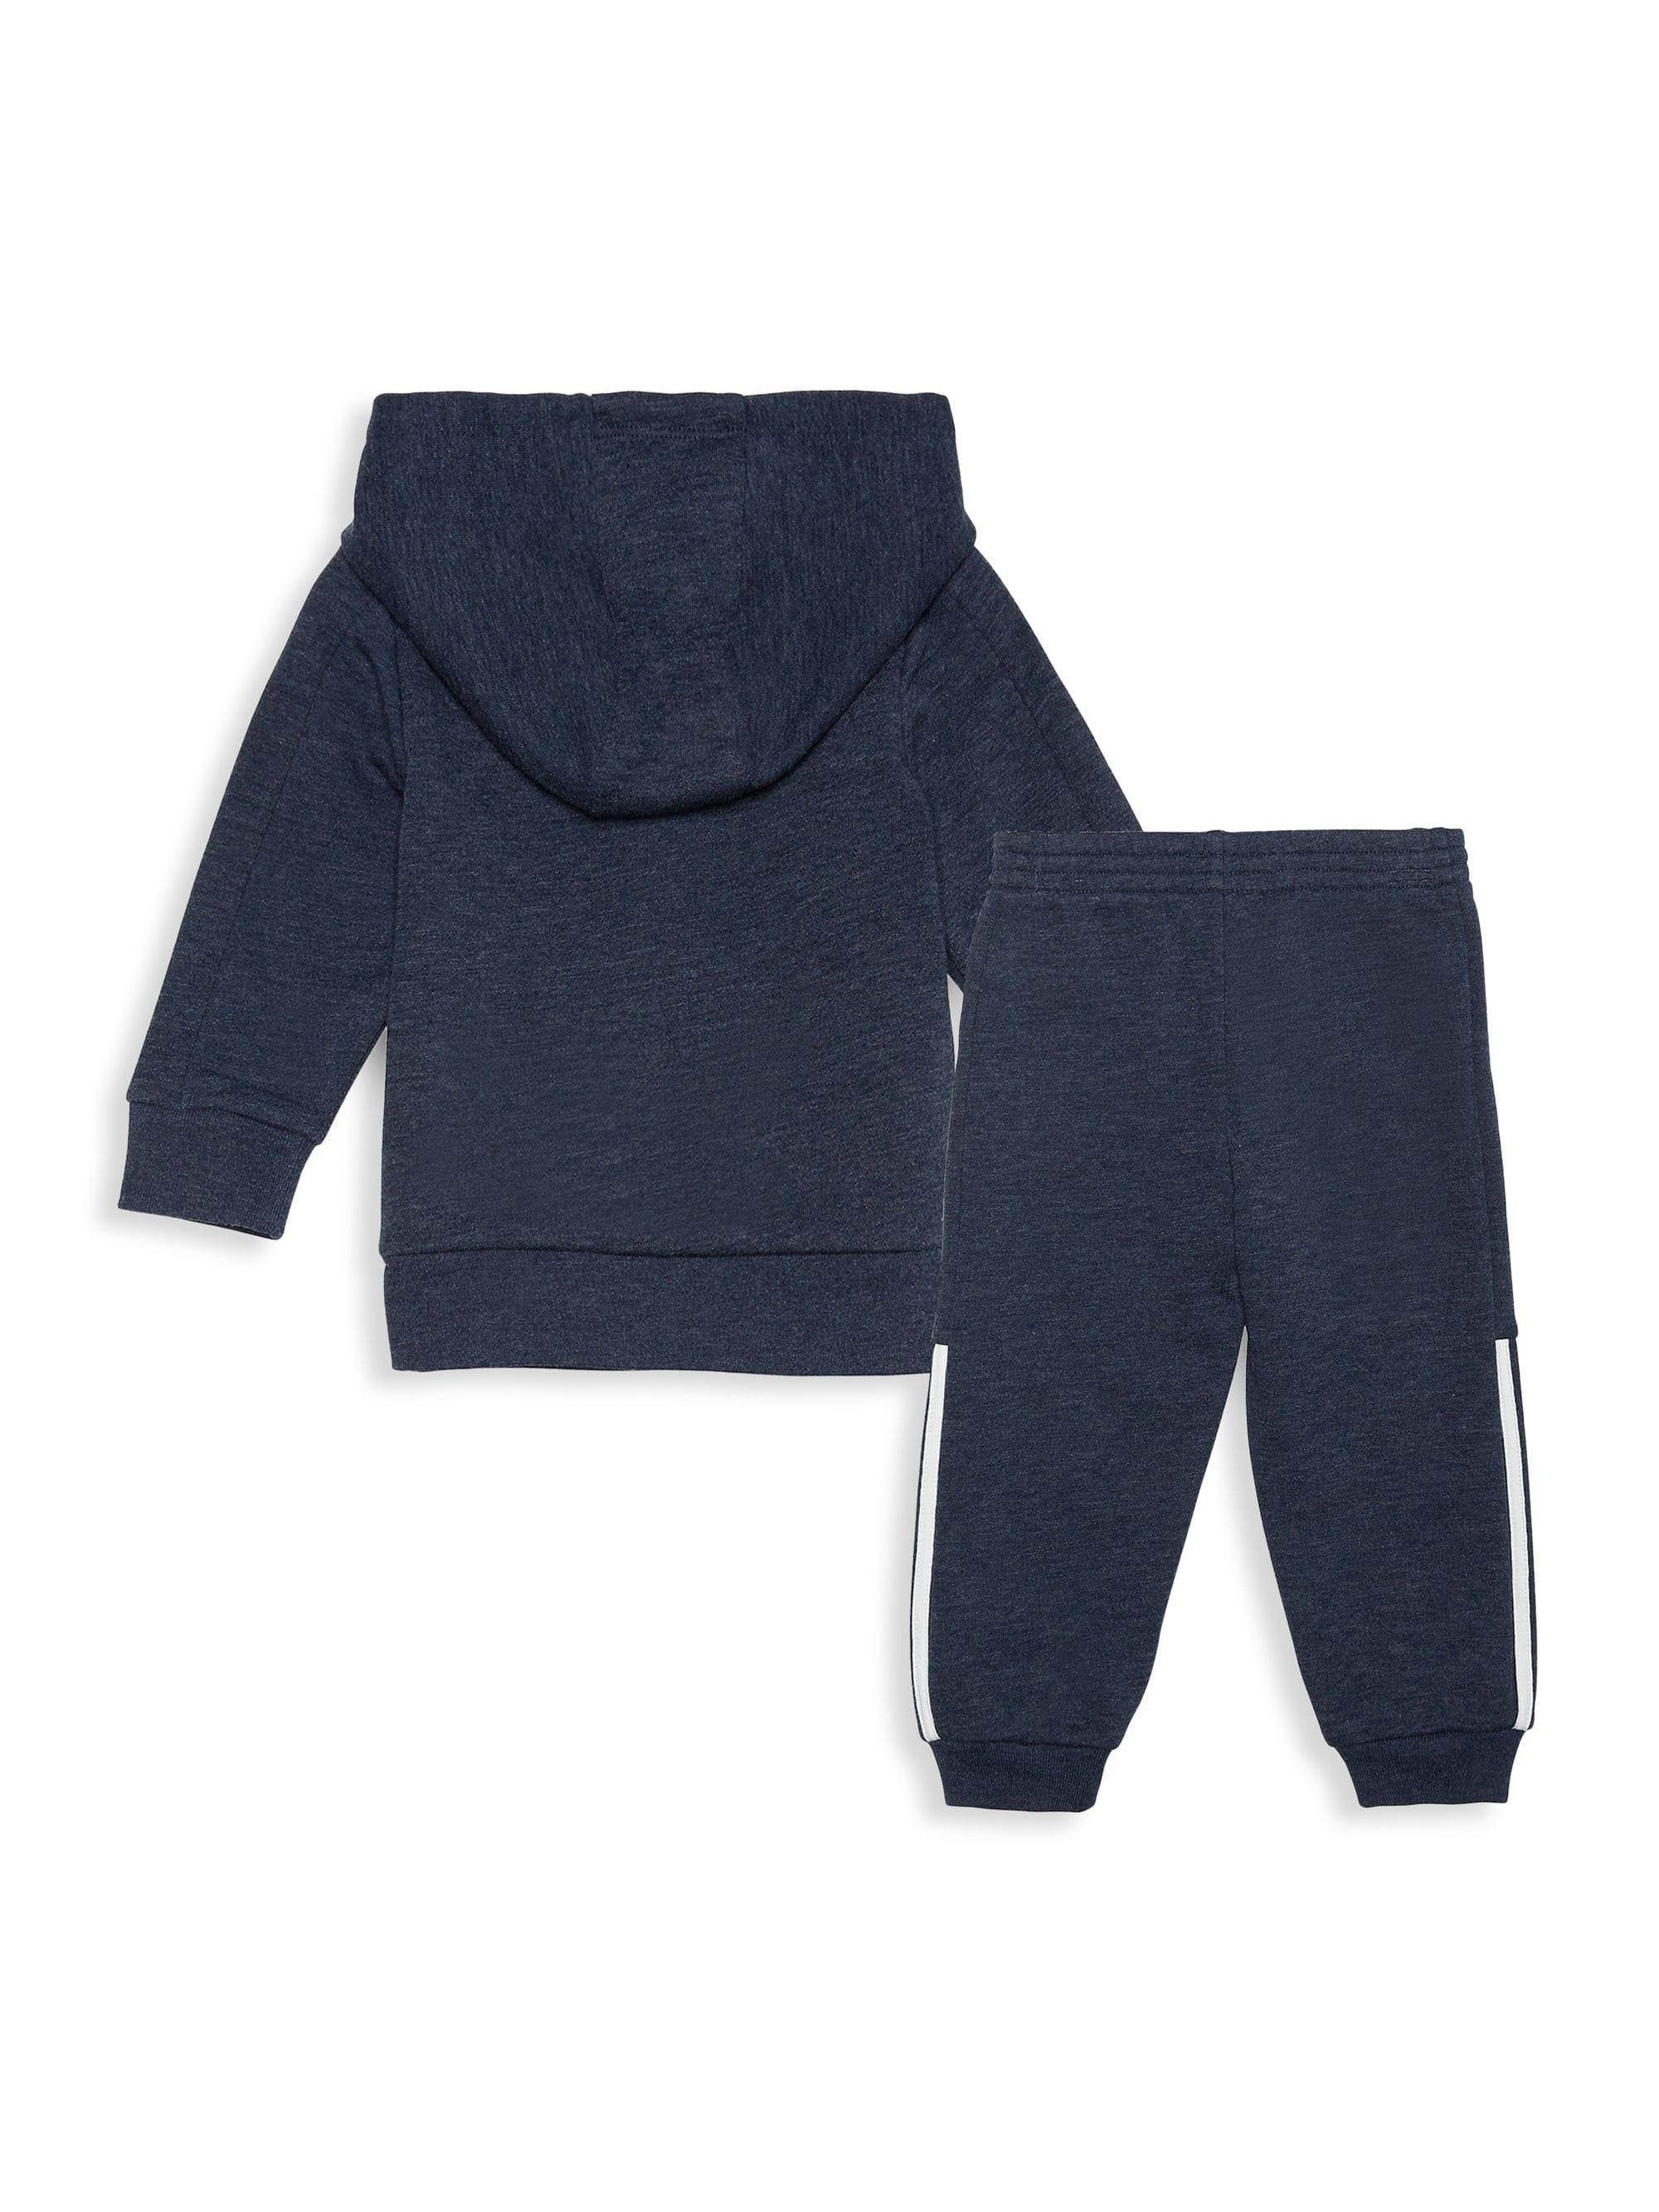 eb7f28bfe Lyst - adidas Baby Boy s Two-piece Melange Hoodie   Joggers Set in ...